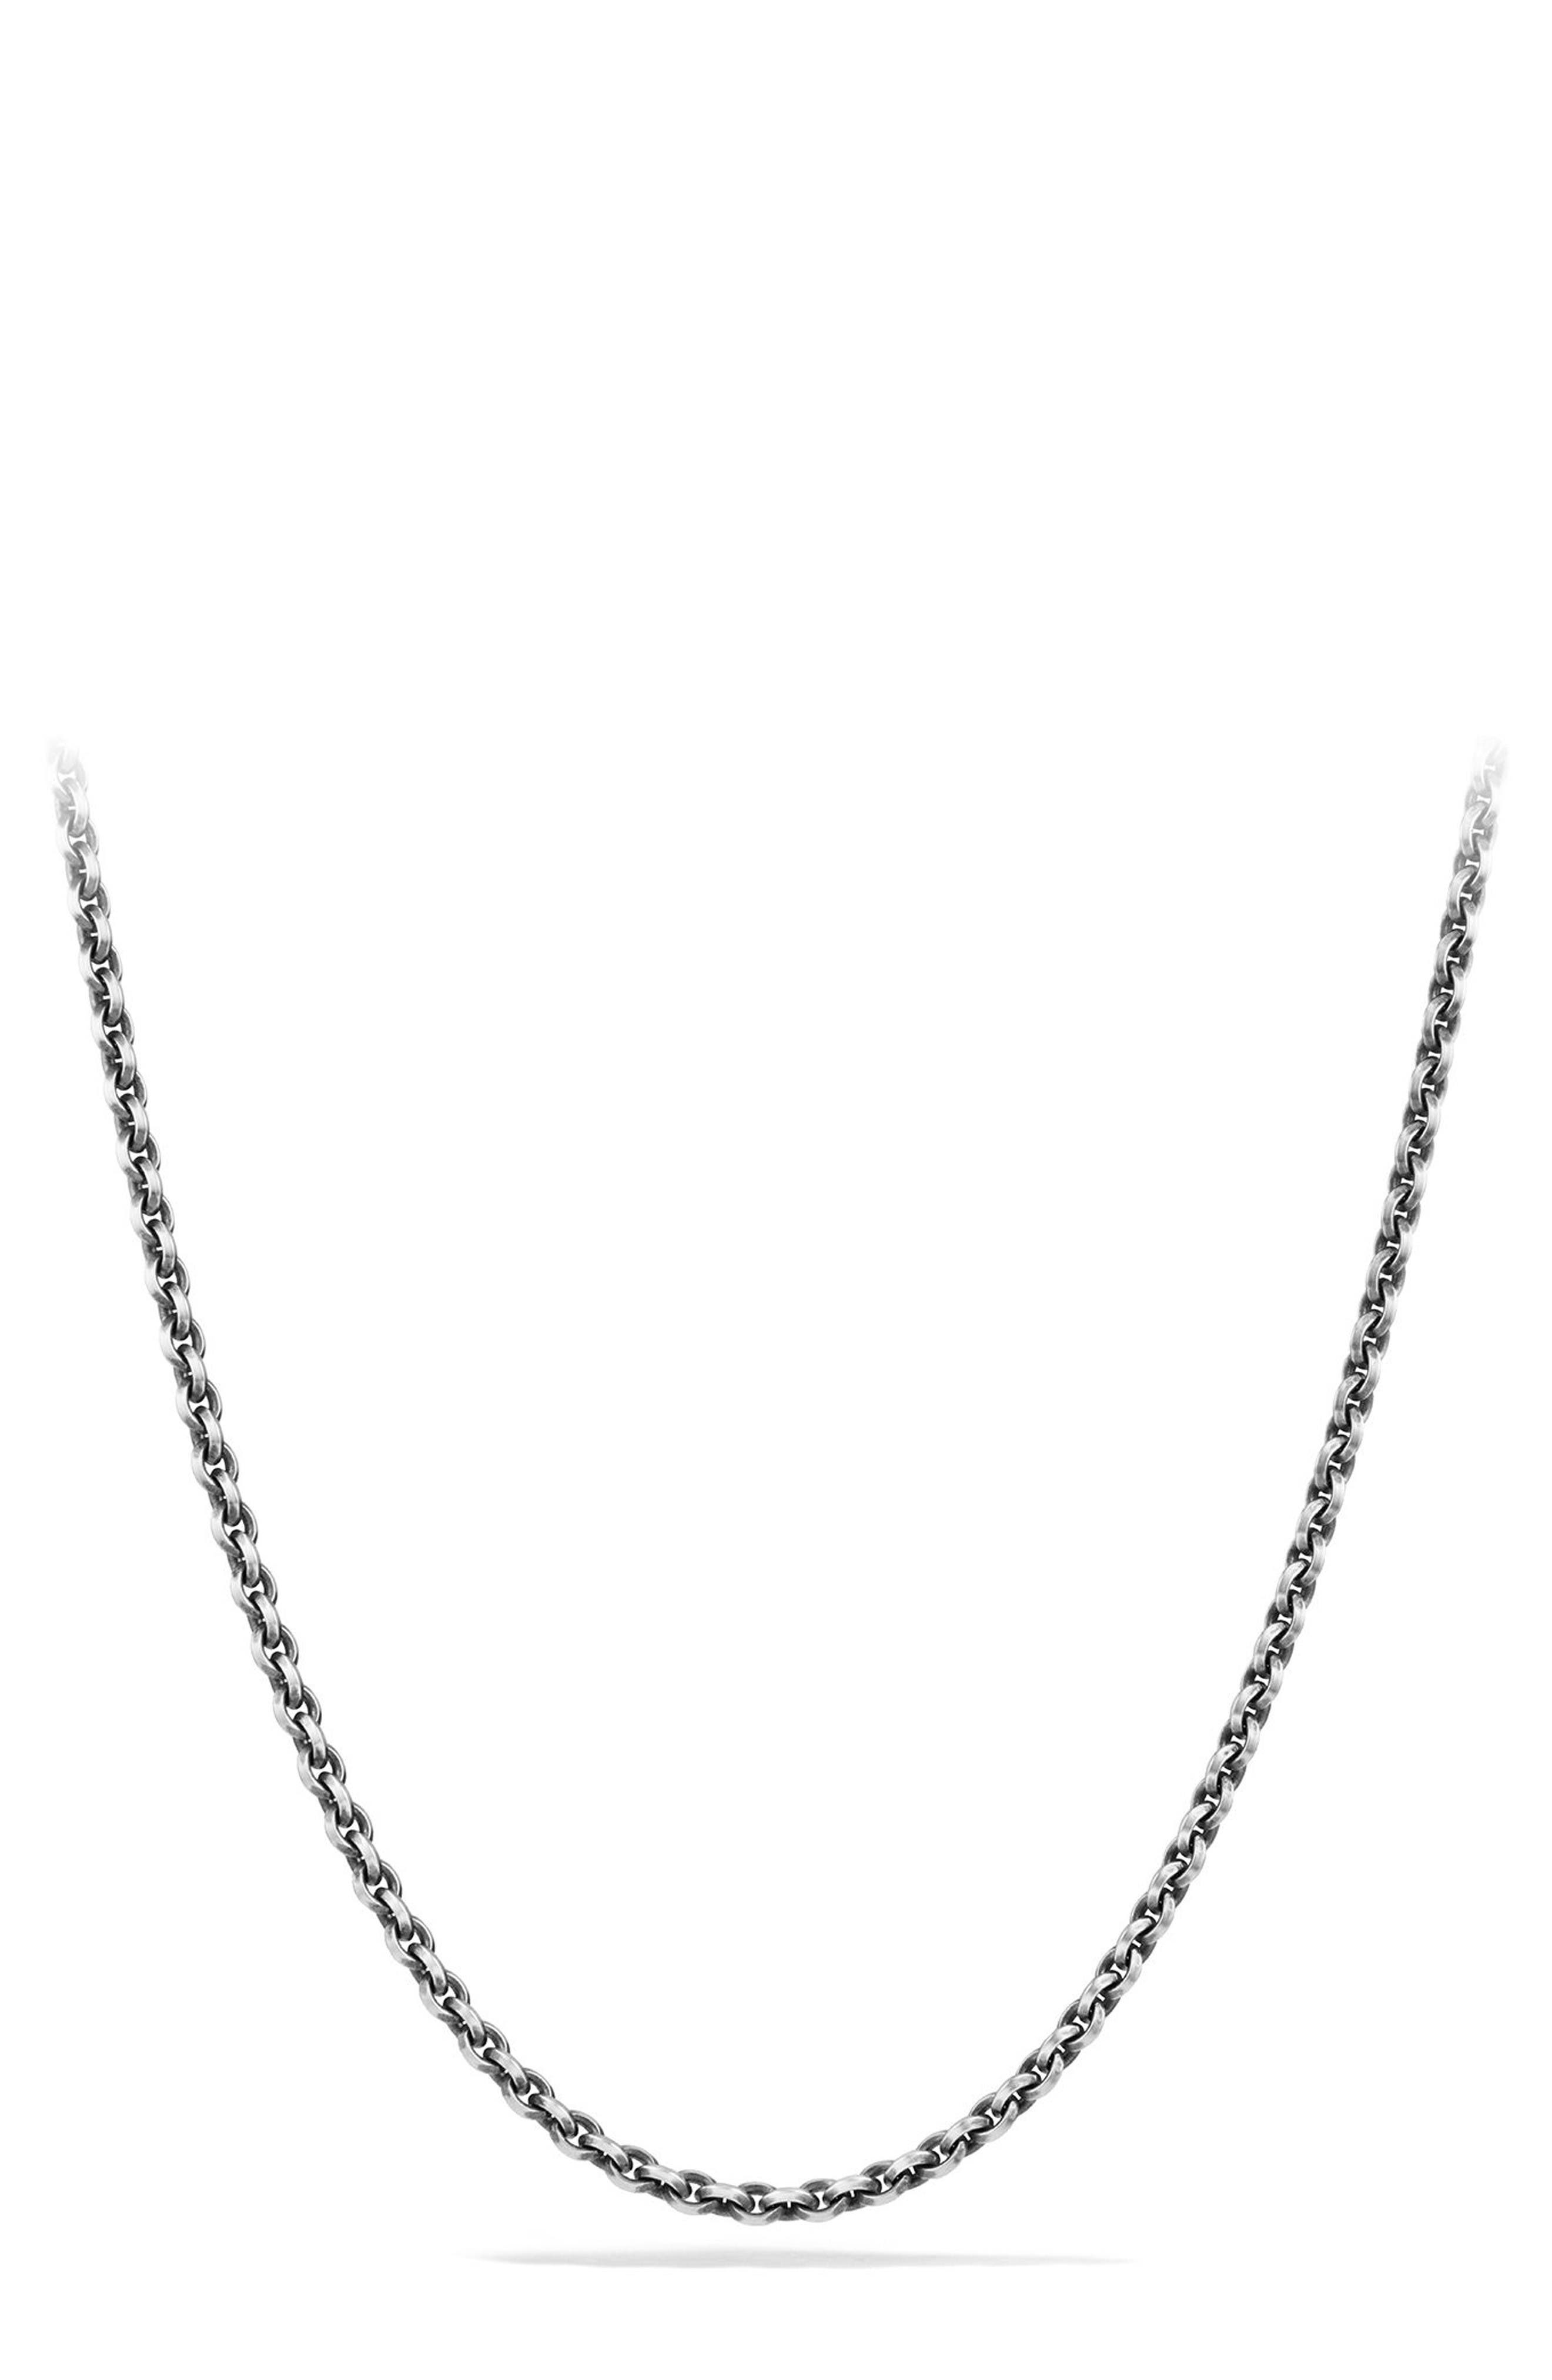 Alternate Image 1 Selected - David Yurman Knife Edge Chain Necklace